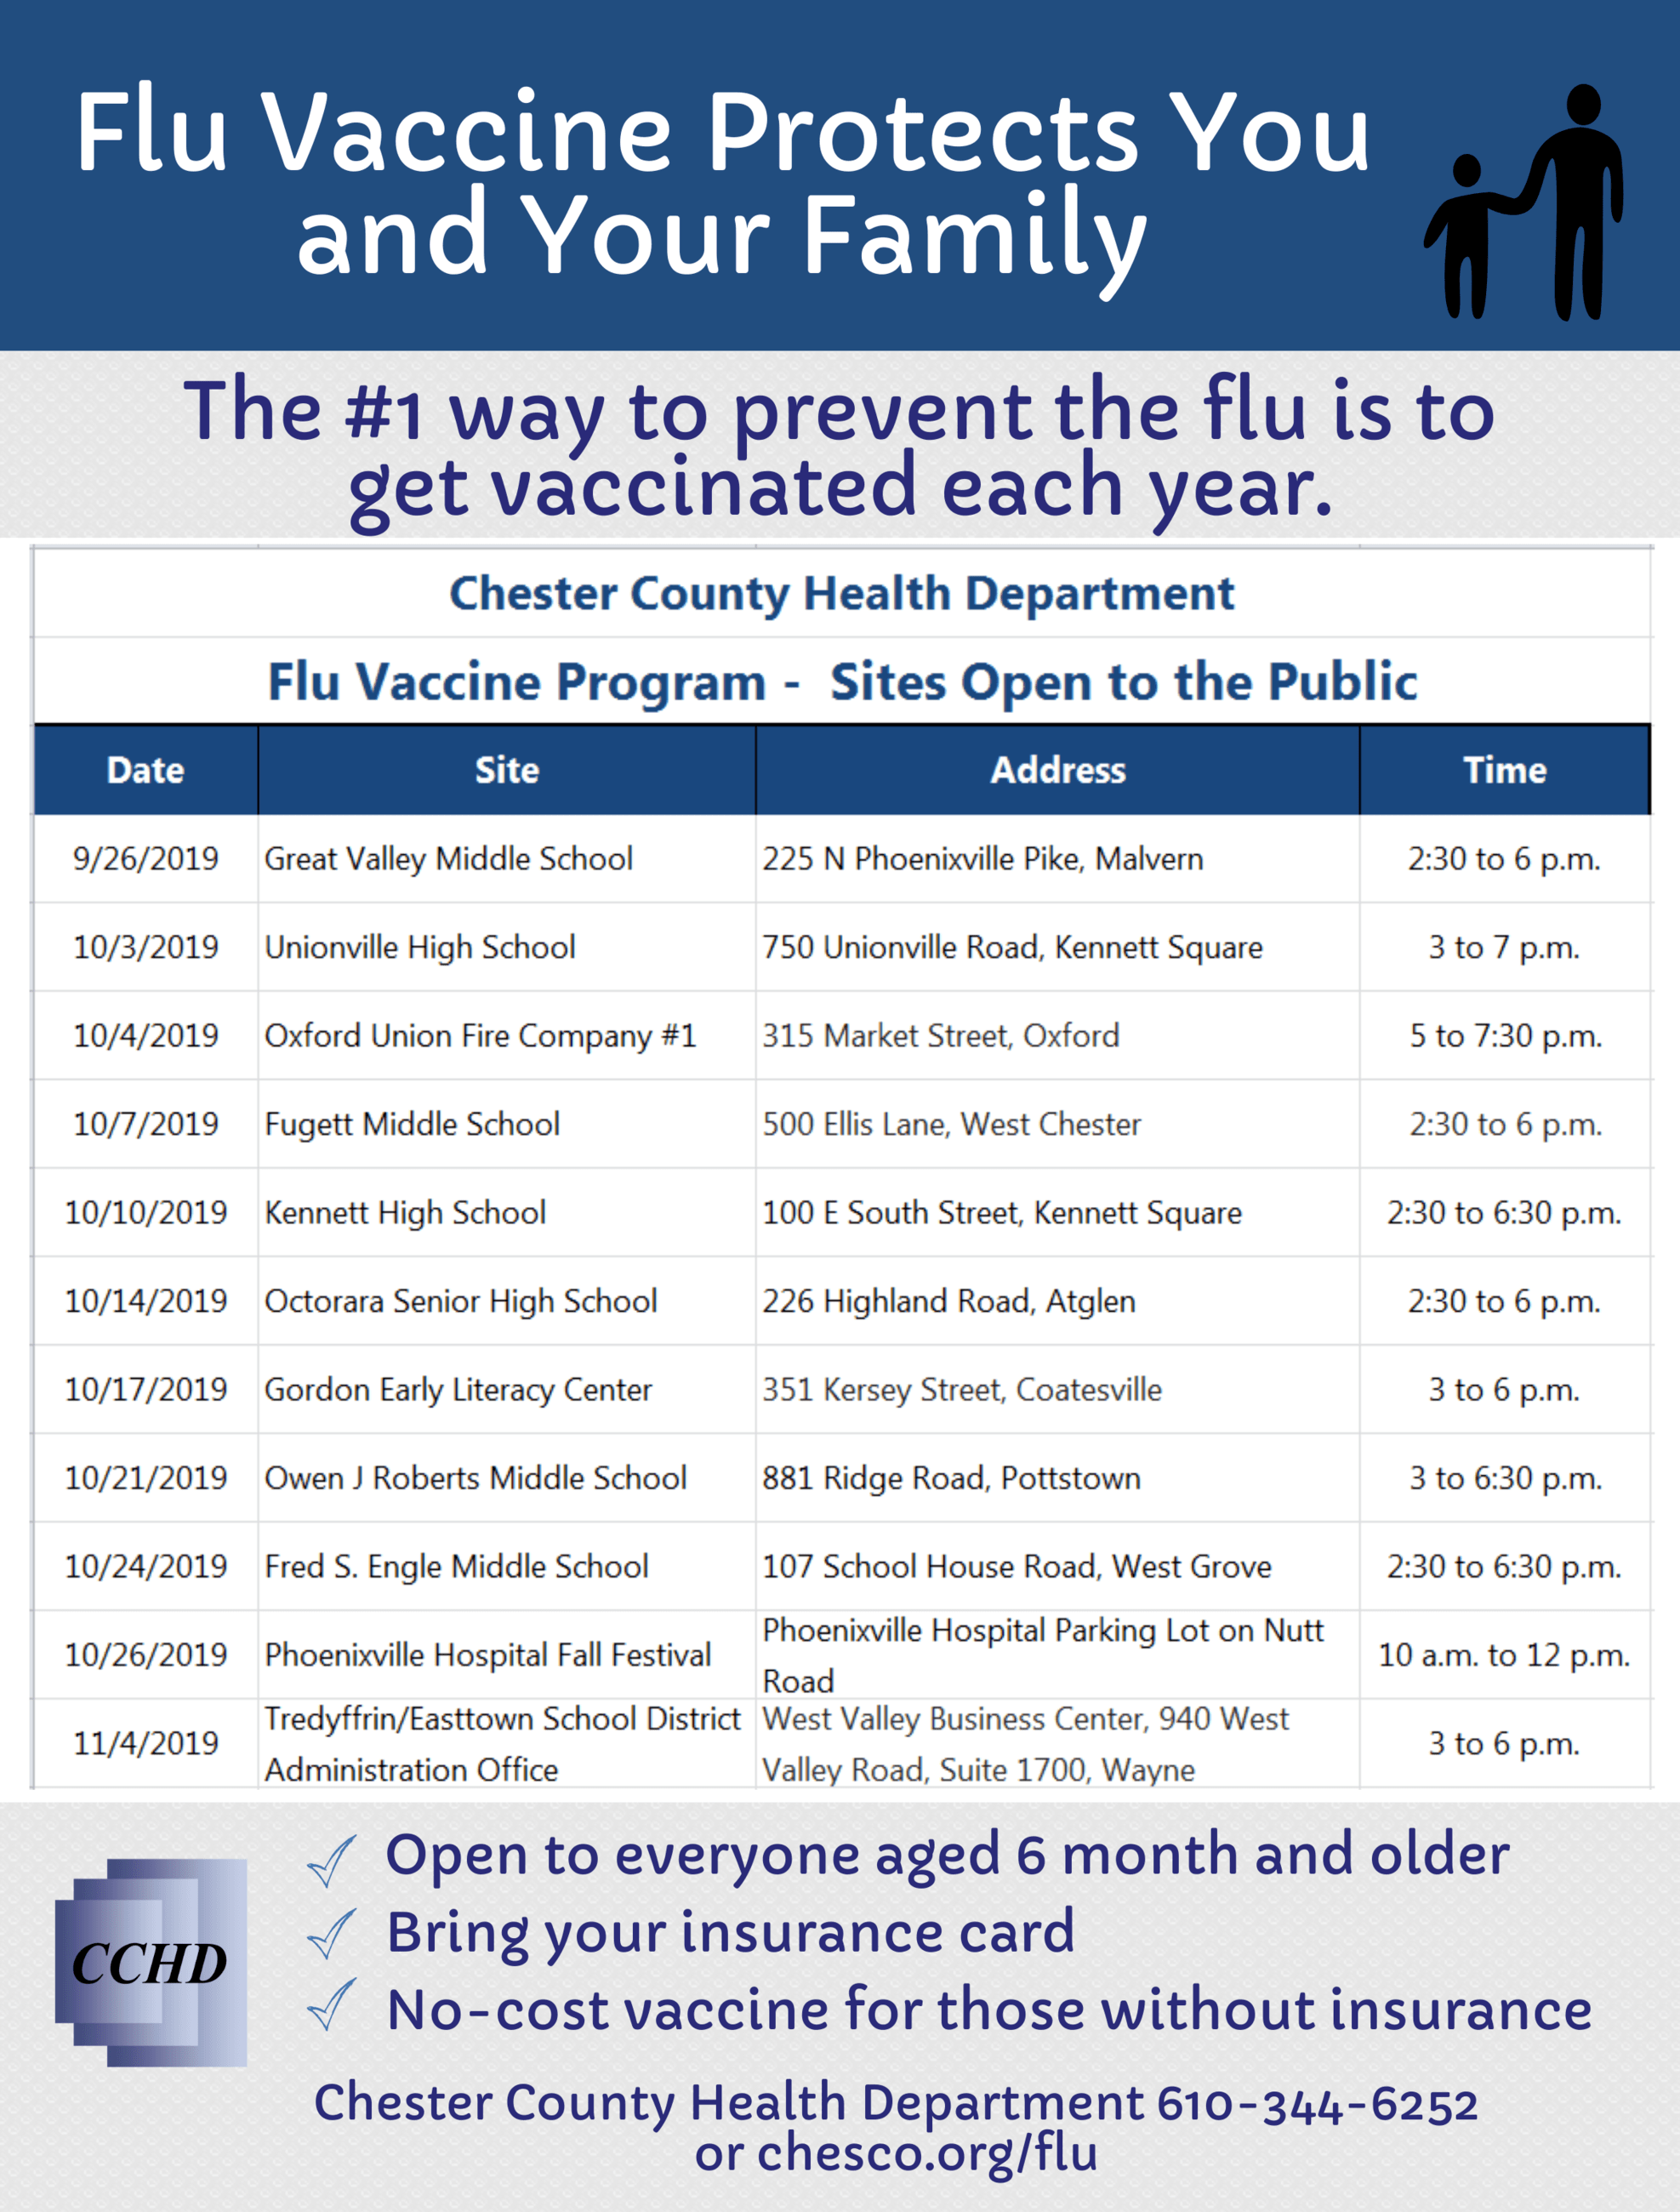 Flu vaccine clinics for the public